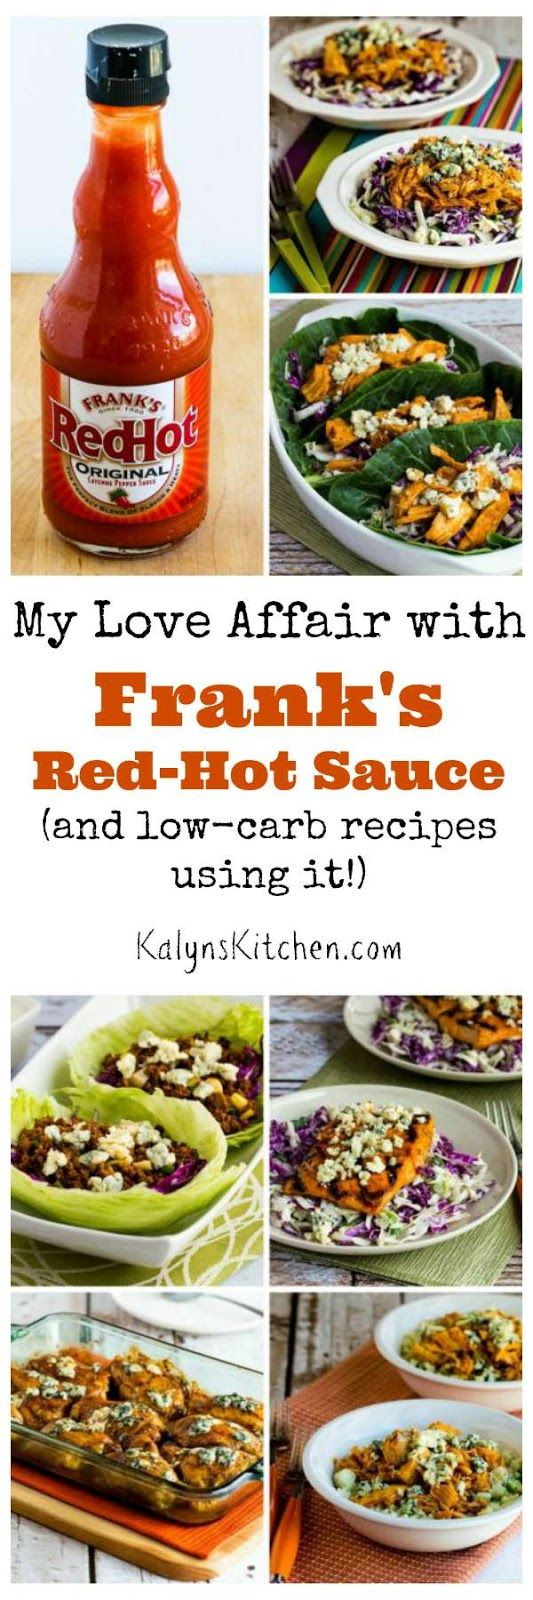 Kalyn's Kitchen Picks: Franks Red Hot Sauce (plus Low-Carb Recipes using Frank's Red Hot Sauce)  [found on KalynsKitchen.com]